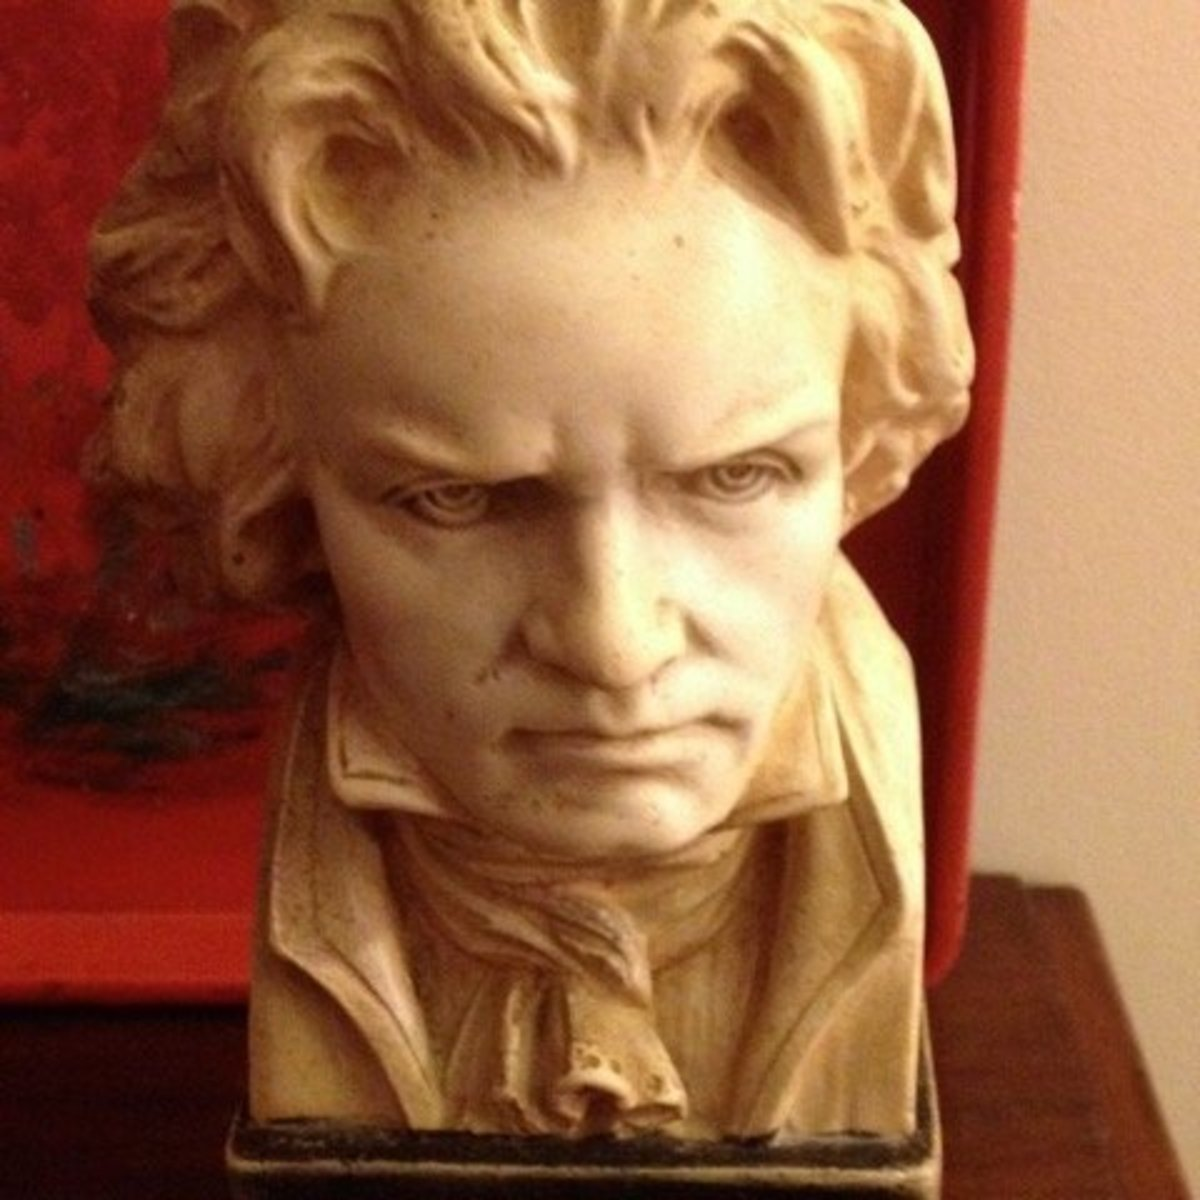 Ludwig van Beethoven(1770–1827), German composer. Despite increasing deafness, Beethoven wrote prodigiously: nine symphonies, thirty-two piano sonatas, sixteen string quartets, the opera Fidelio (1814), and the Mass in D (the Missa Solemnis, 1823).